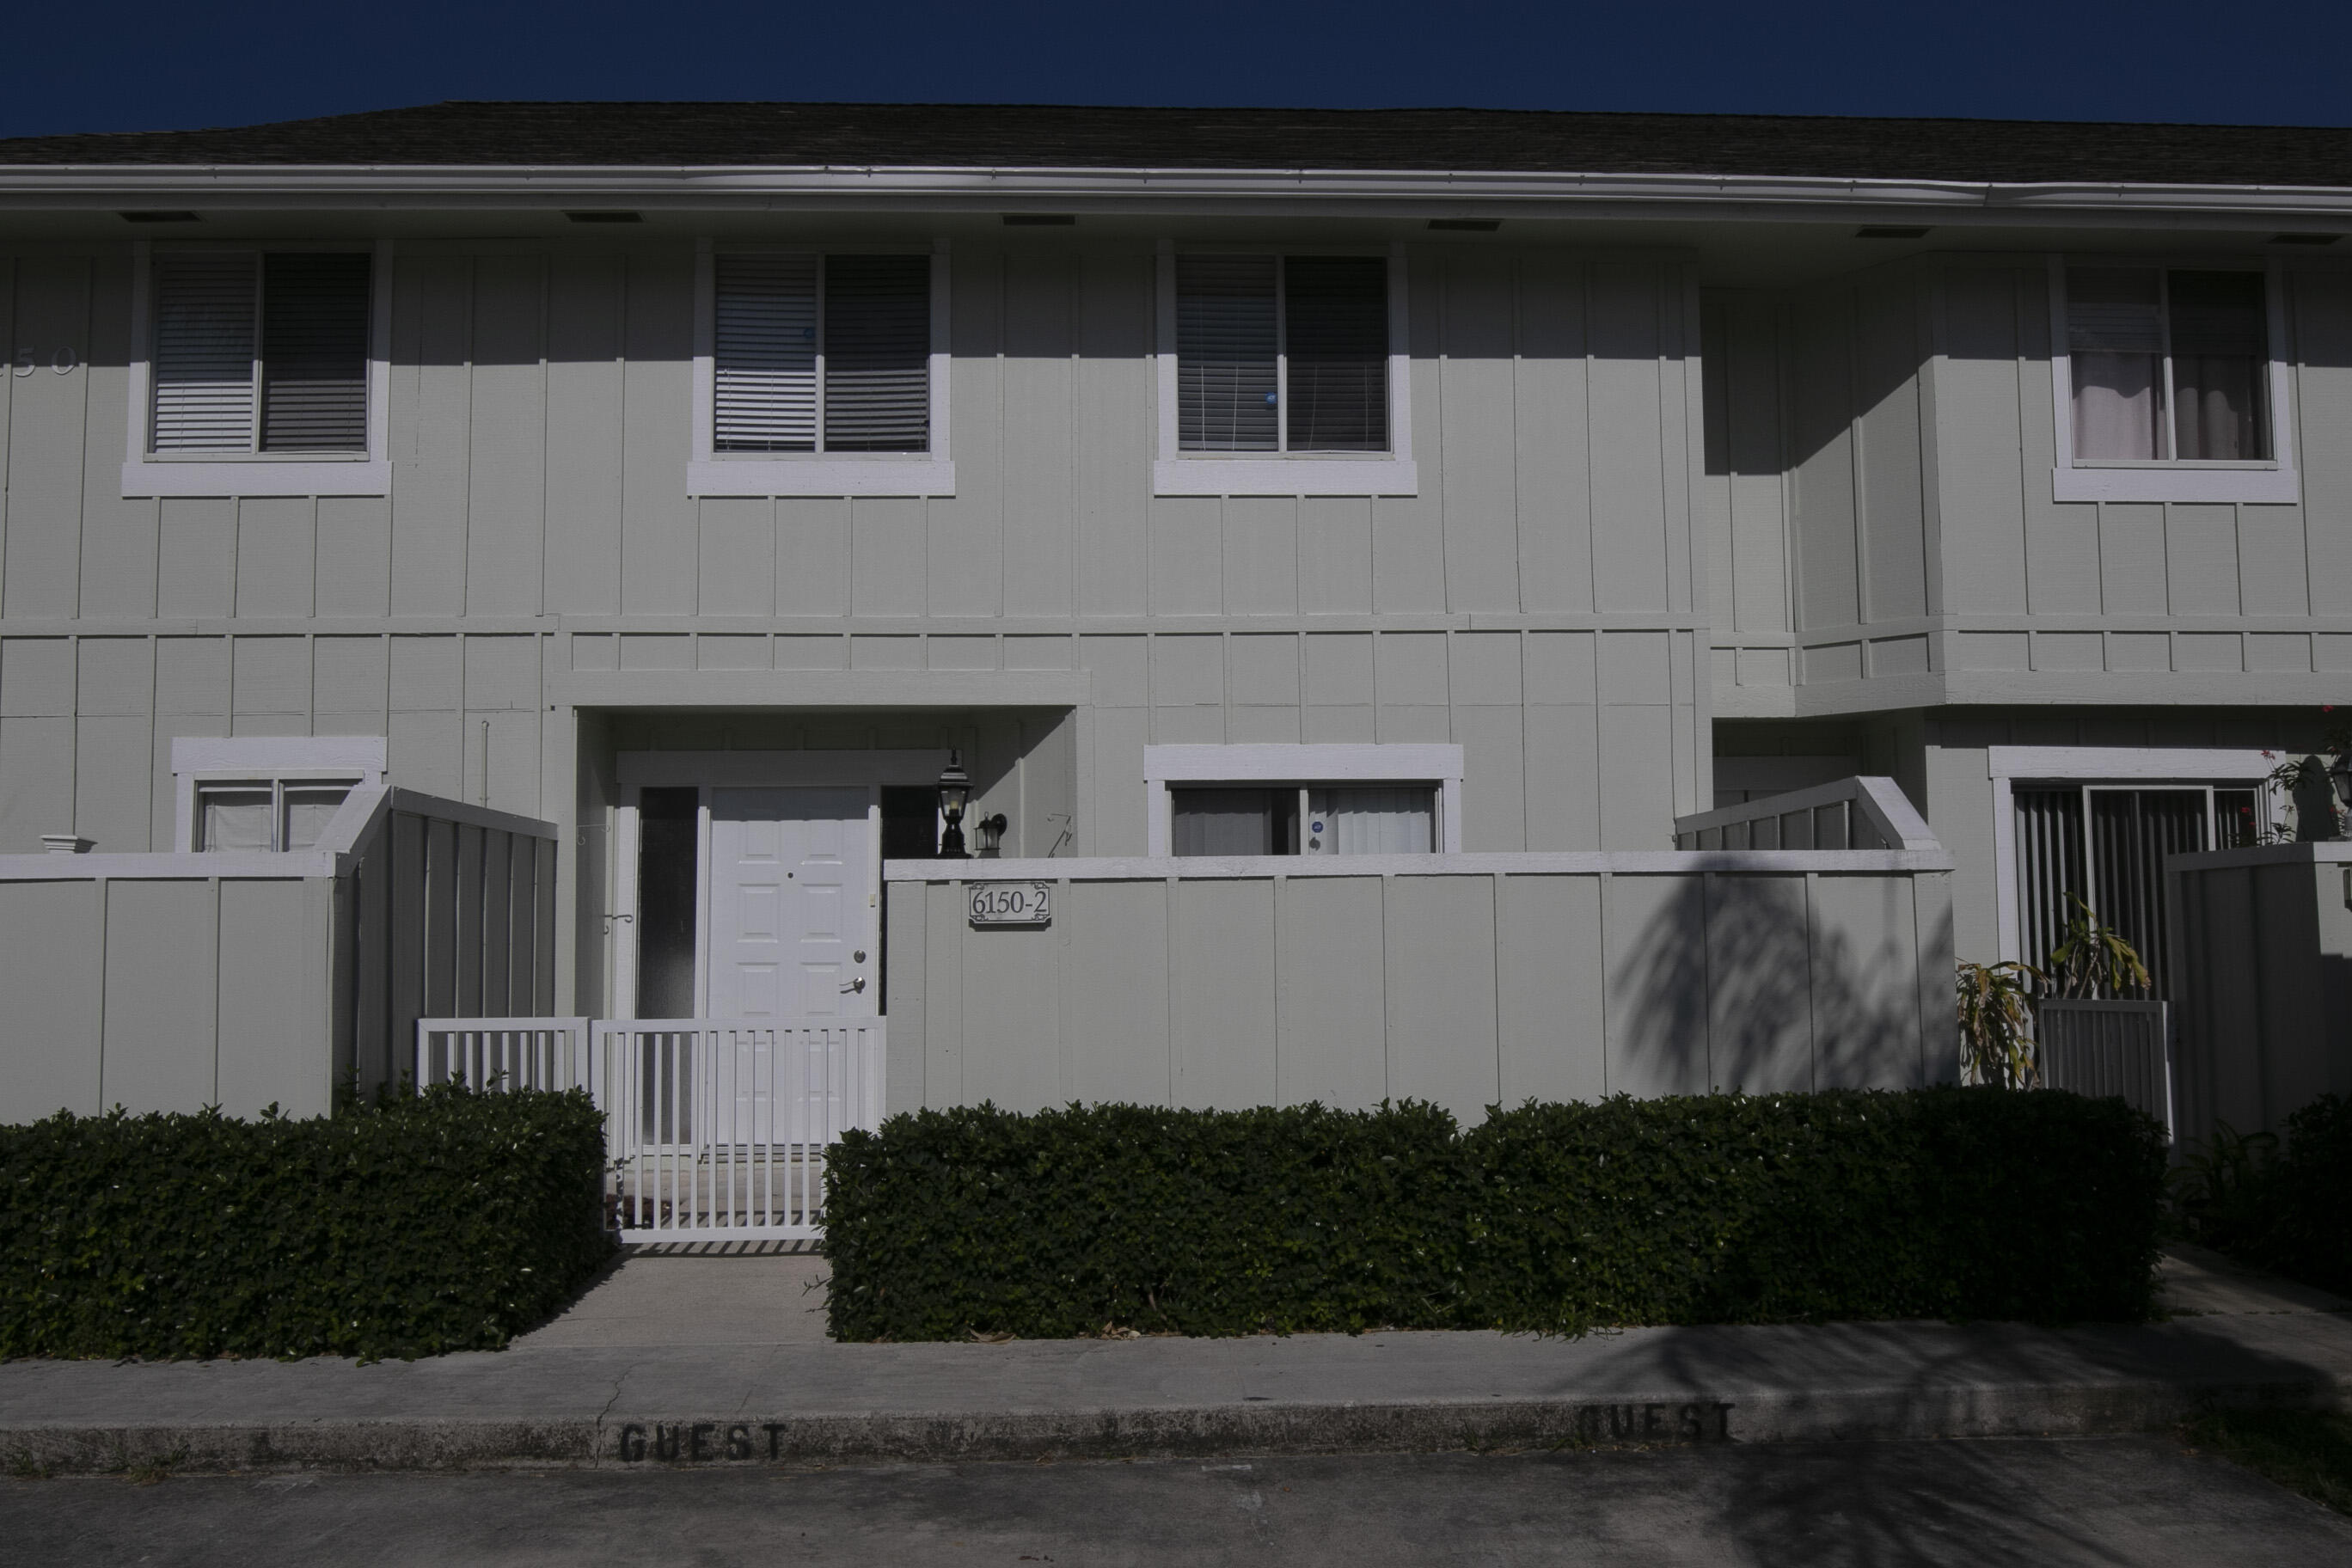 Great opportunity in Riverwalk. 2 master bedrooms, 2.5 baths, 2 story townhouse with 2 courtyards, boat ramp,, canoe rack, ocean access, board walk & park benches along river for fishing. Playground, basketball, tennis courts, 3 swimming pools, close to I-95, stores and beaches Effective January 2021 Buyers are now required to own the property for 1 year before they are permitted to rent it out.